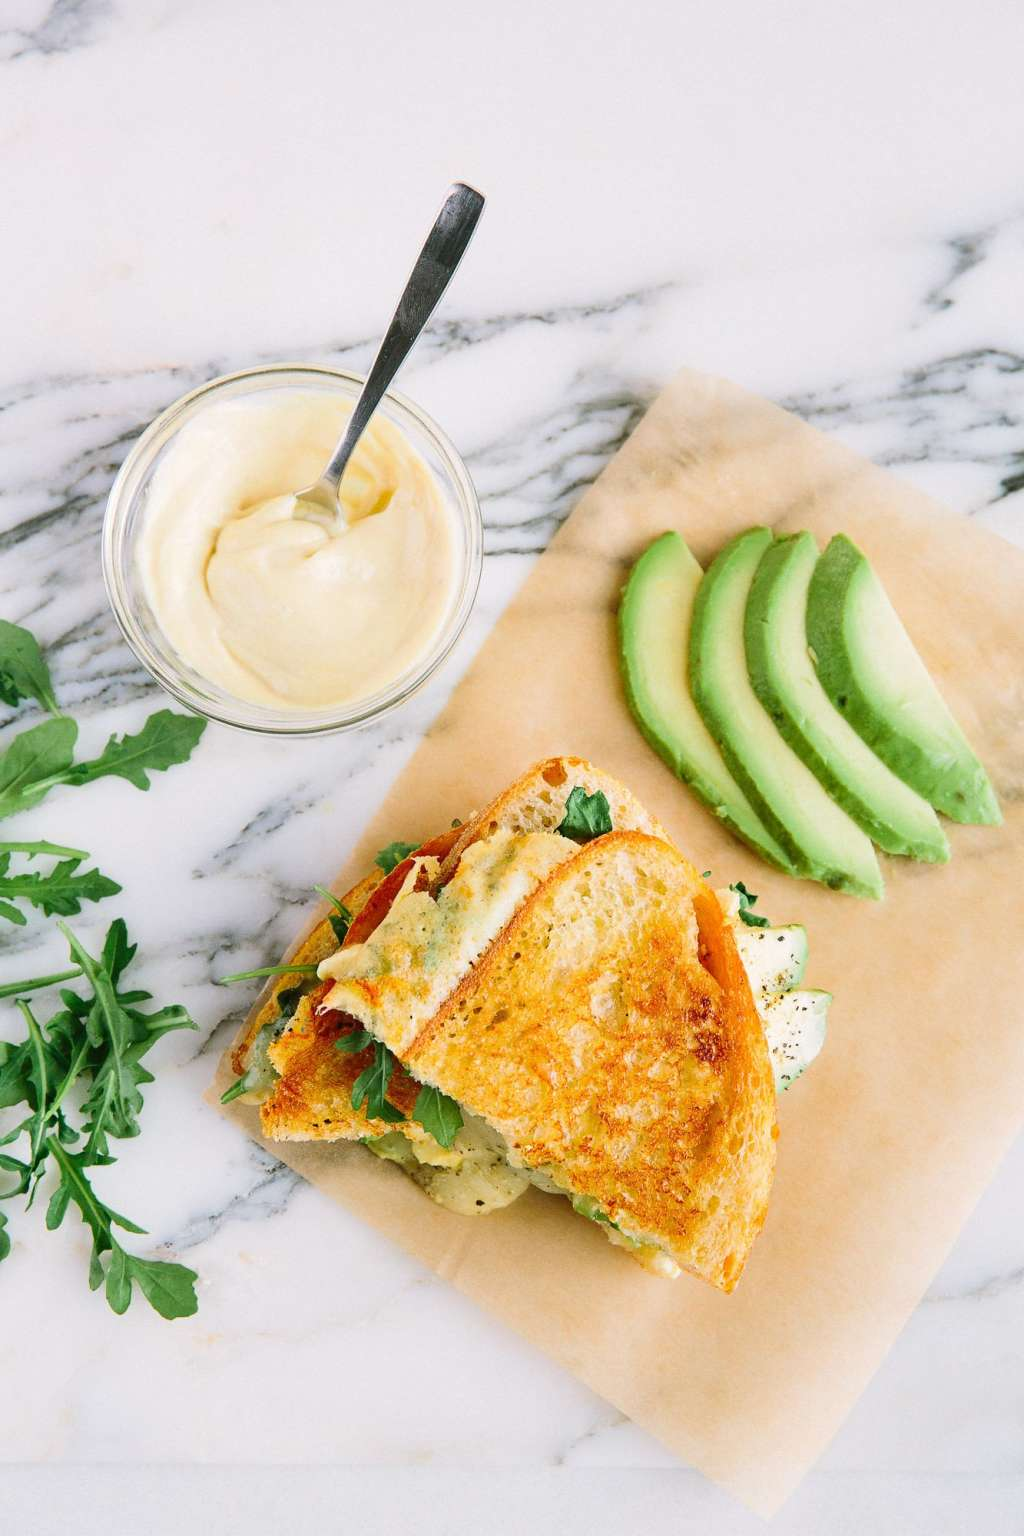 Recipe: Muenster and Avocado Grilled Cheese